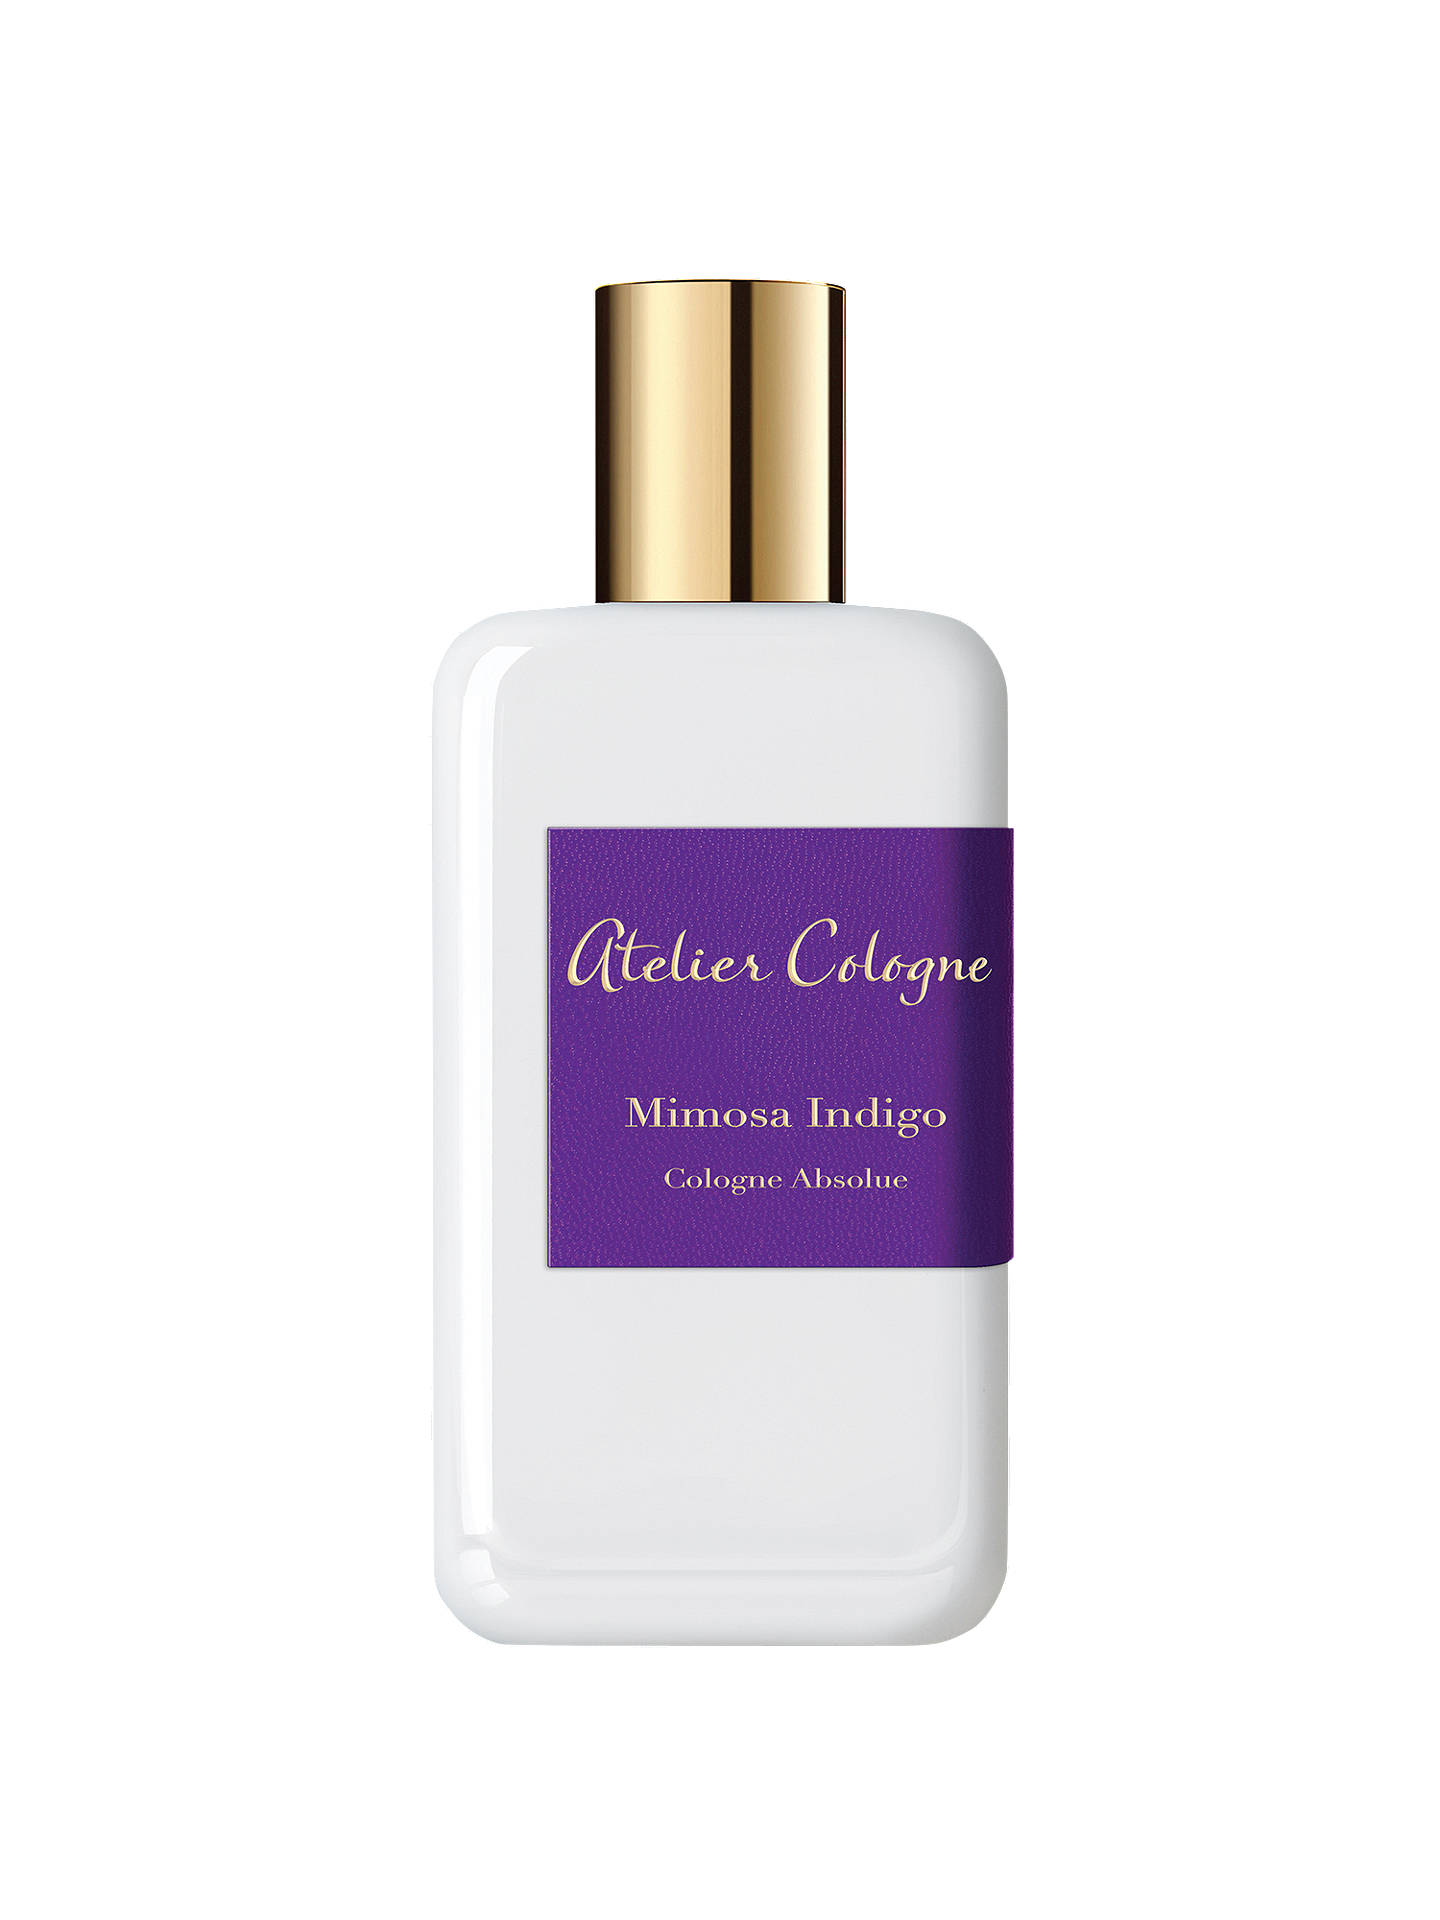 Buy Atelier Cologne Mimosa Indigo Cologne Absolue, 100ml Online at johnlewis.com